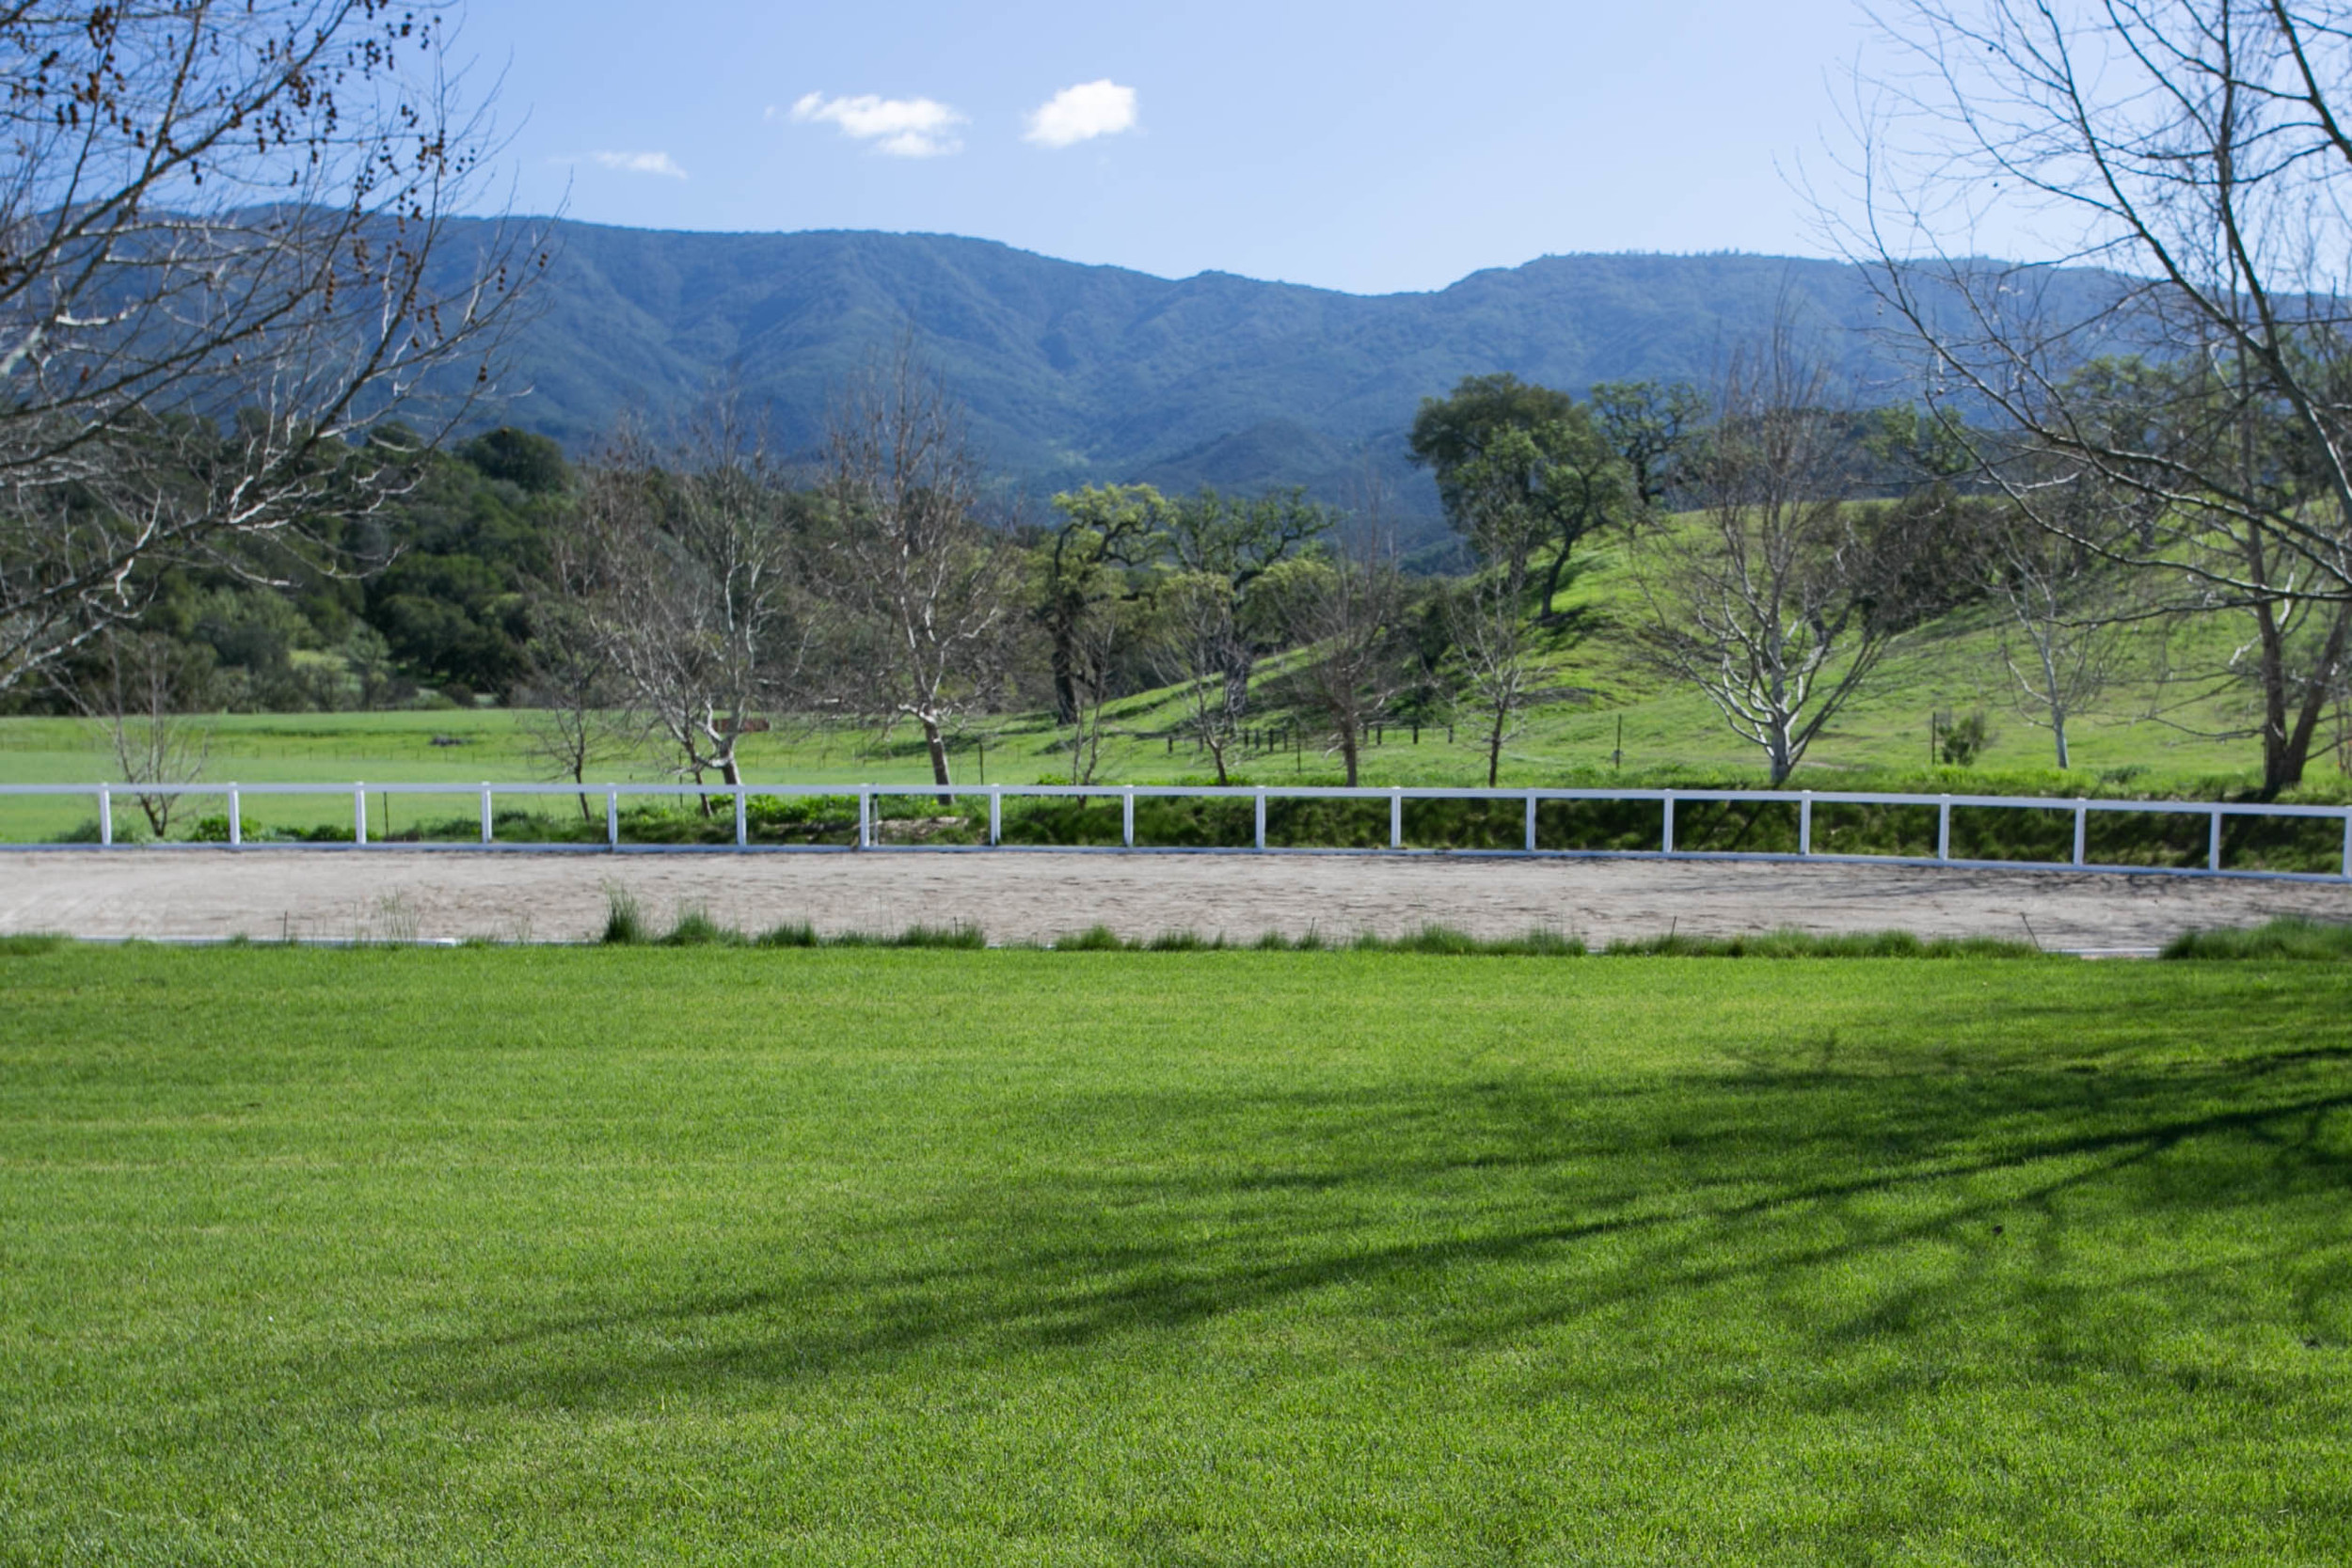 The 110' x 200' Riding Arena is partially sunken into the landscape, which creates a unique vantage point for spectators. The arena is defined by WoodGuard low maintenance rail fencing. This fencing starts with a structurally sound solid wood core treated with a non-toxic organic borate compound to protect against dry rot, termites, and fungus. Finally, it is then coated in an engineered, UV-stabilized plastic blend which requires NO PAINTING...ever. Dust and footing moisture level control is provided by four, recessed and rider safe, 60 gpm Hunter I-90 rotor sprinklers. Application can be automatic or manual at over 120 gallons per minute.